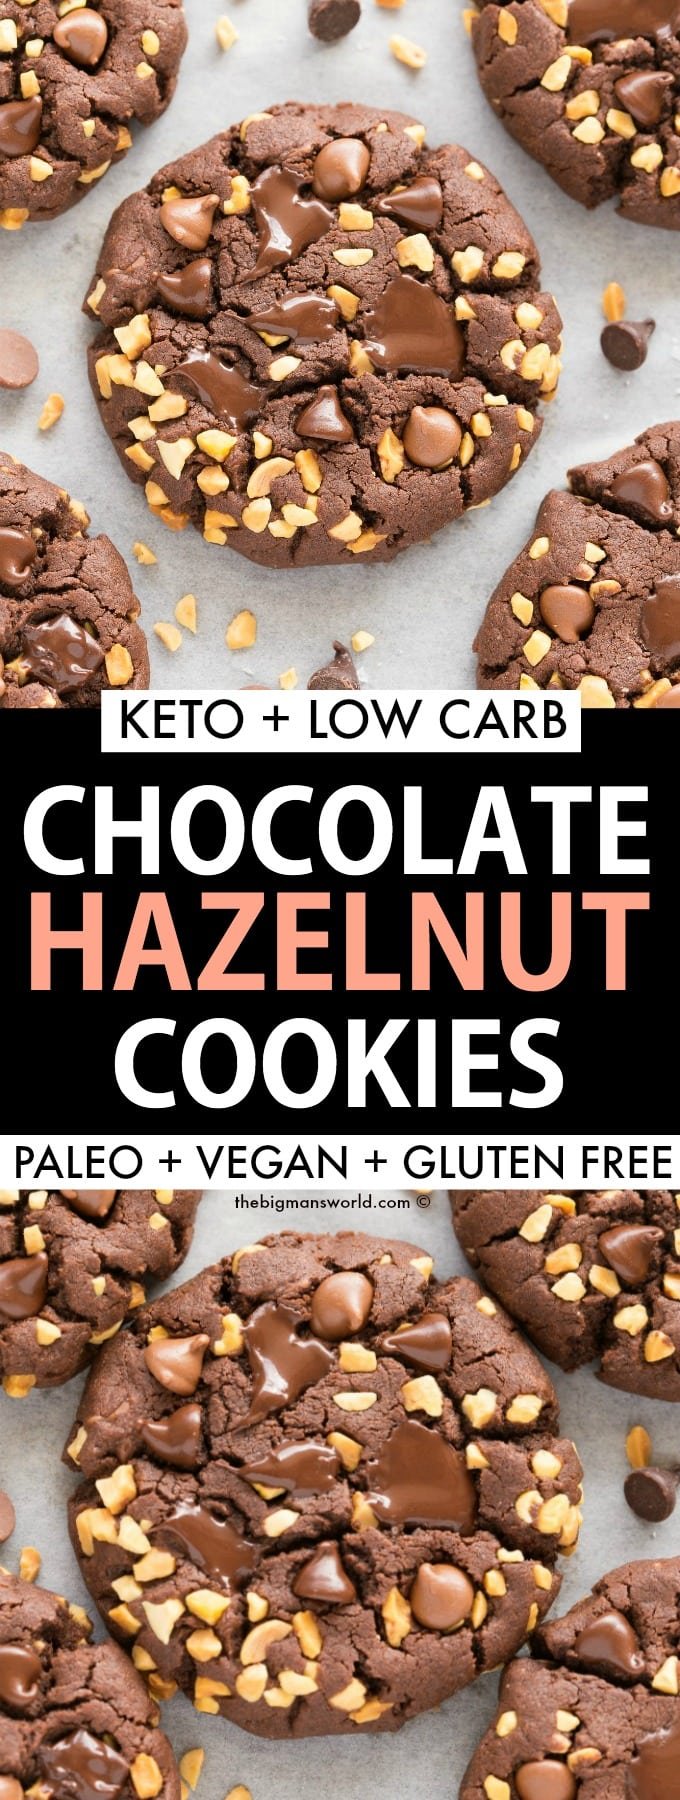 Paleo and Vegan Chocolate and Hazelnut Cookies recipe that are keto and low carb too!